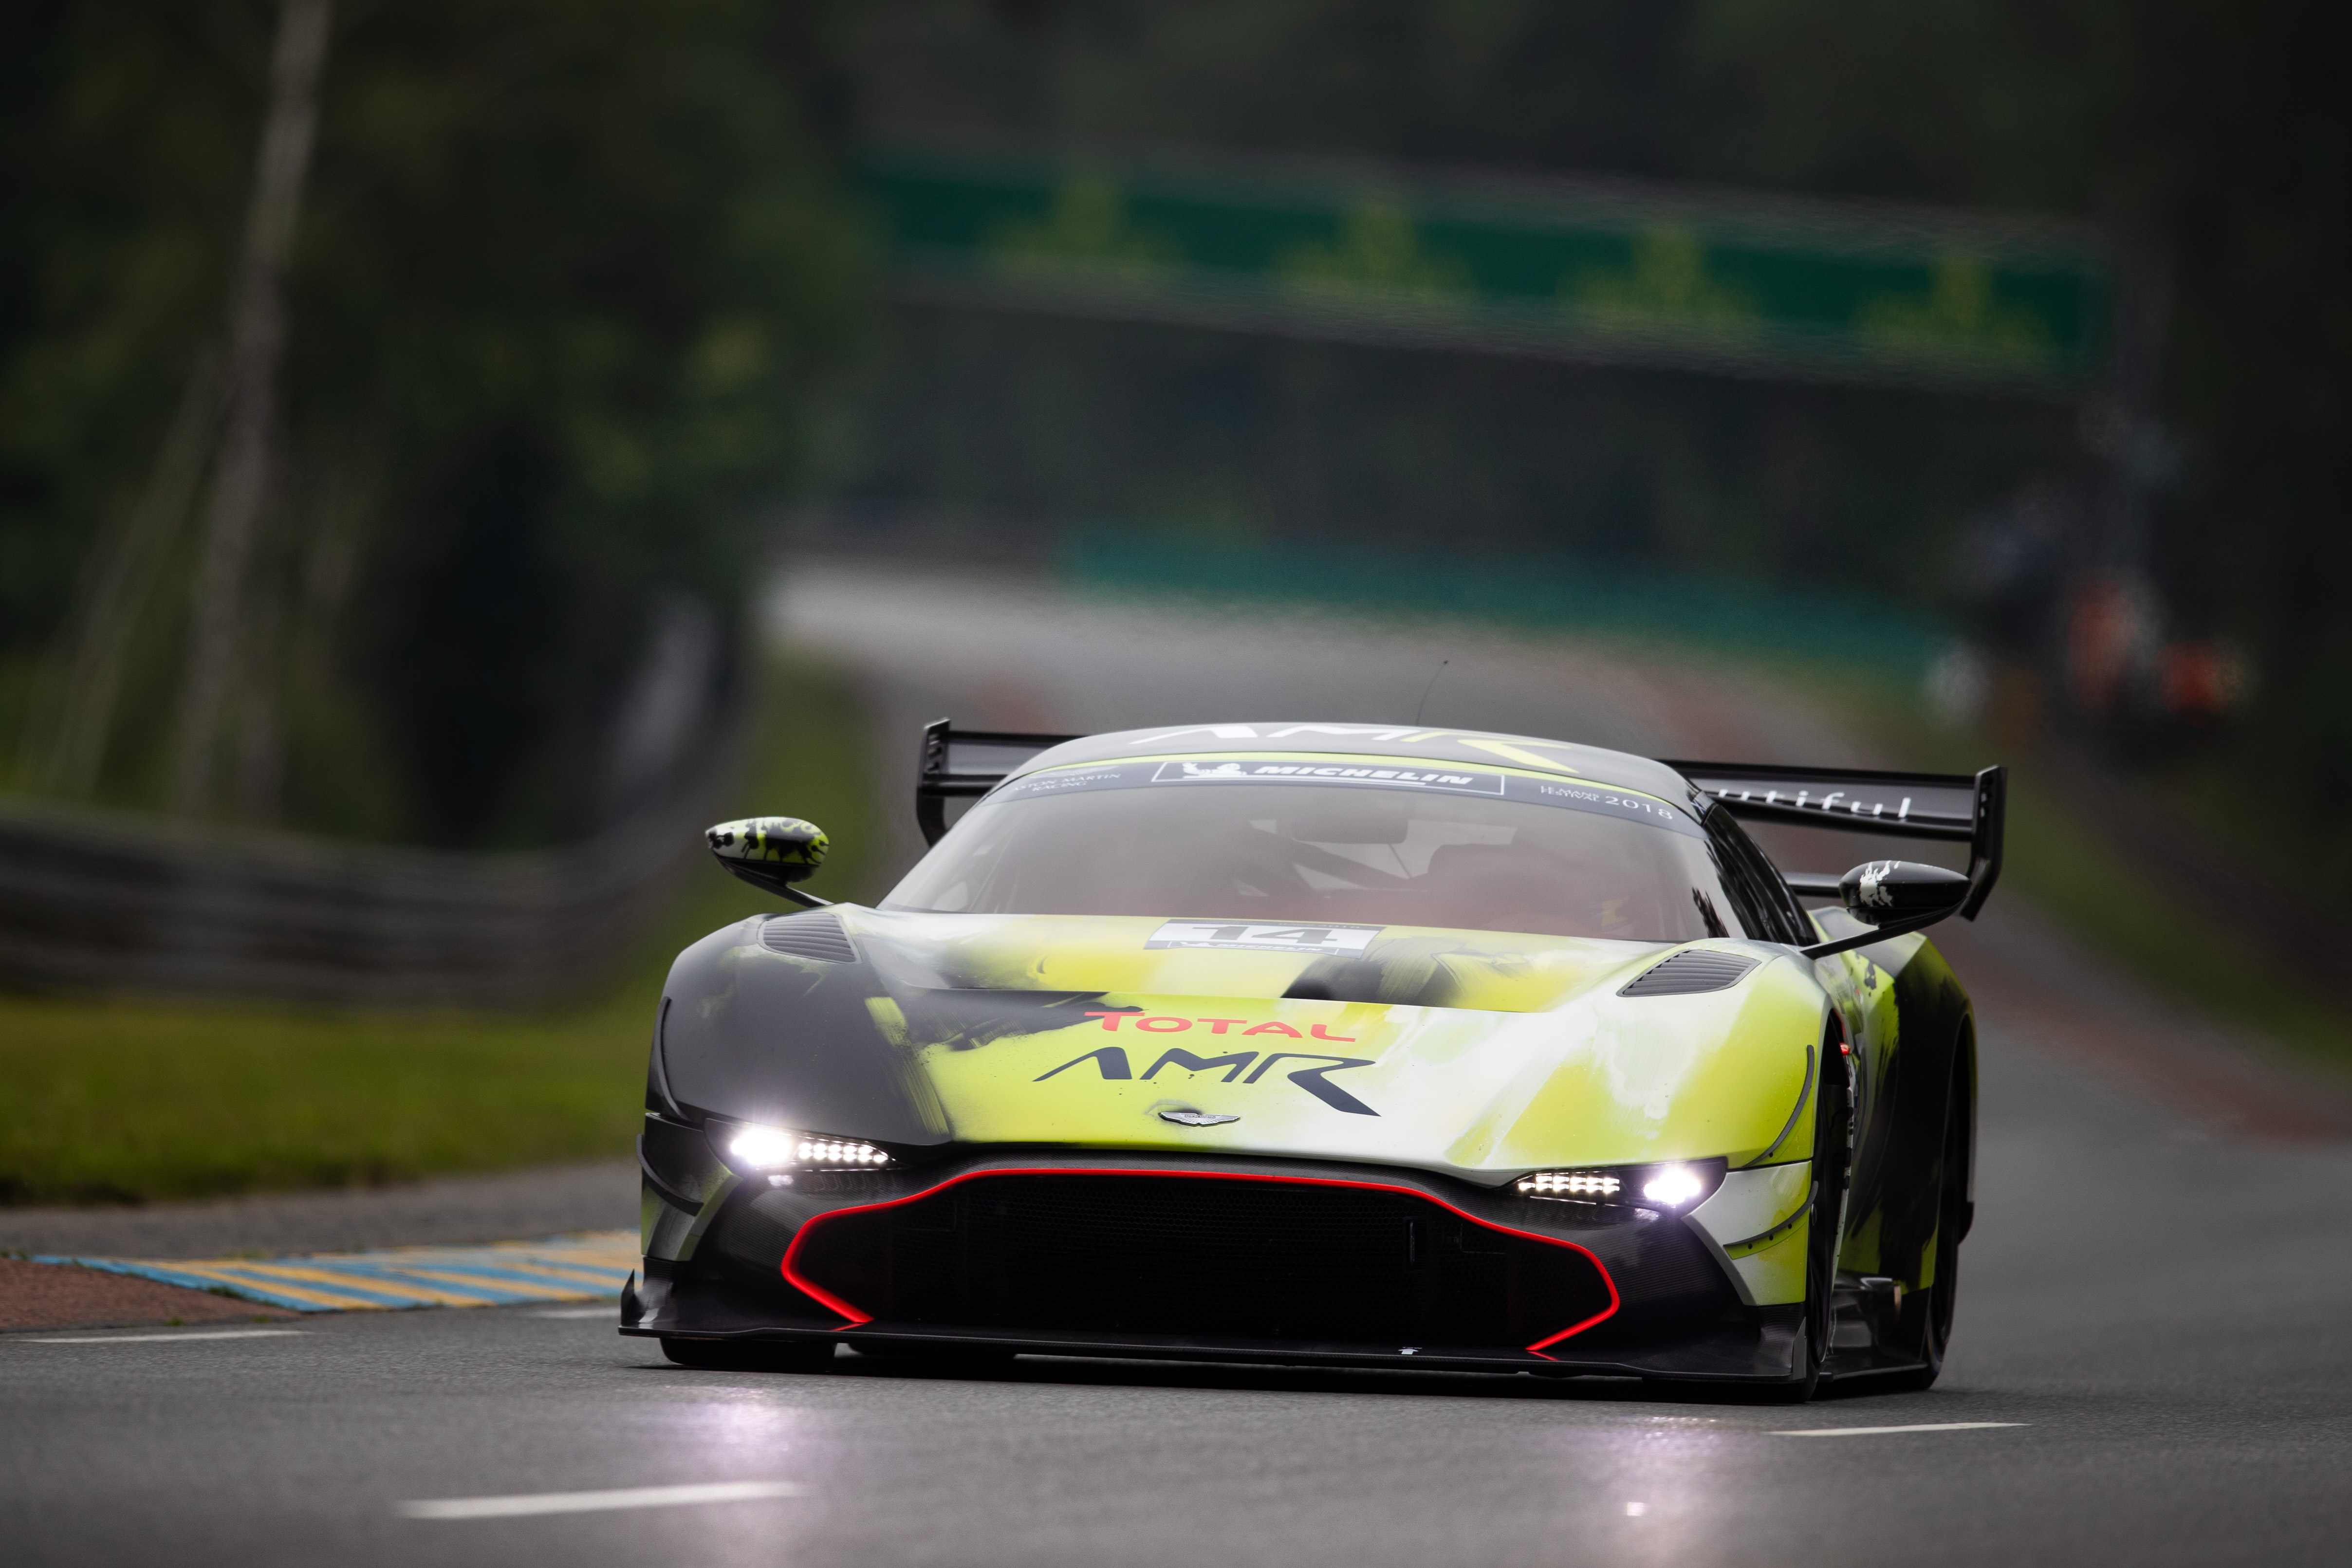 Aston Martin Vulcan AMR Pro - Goodwood Festival of Speed